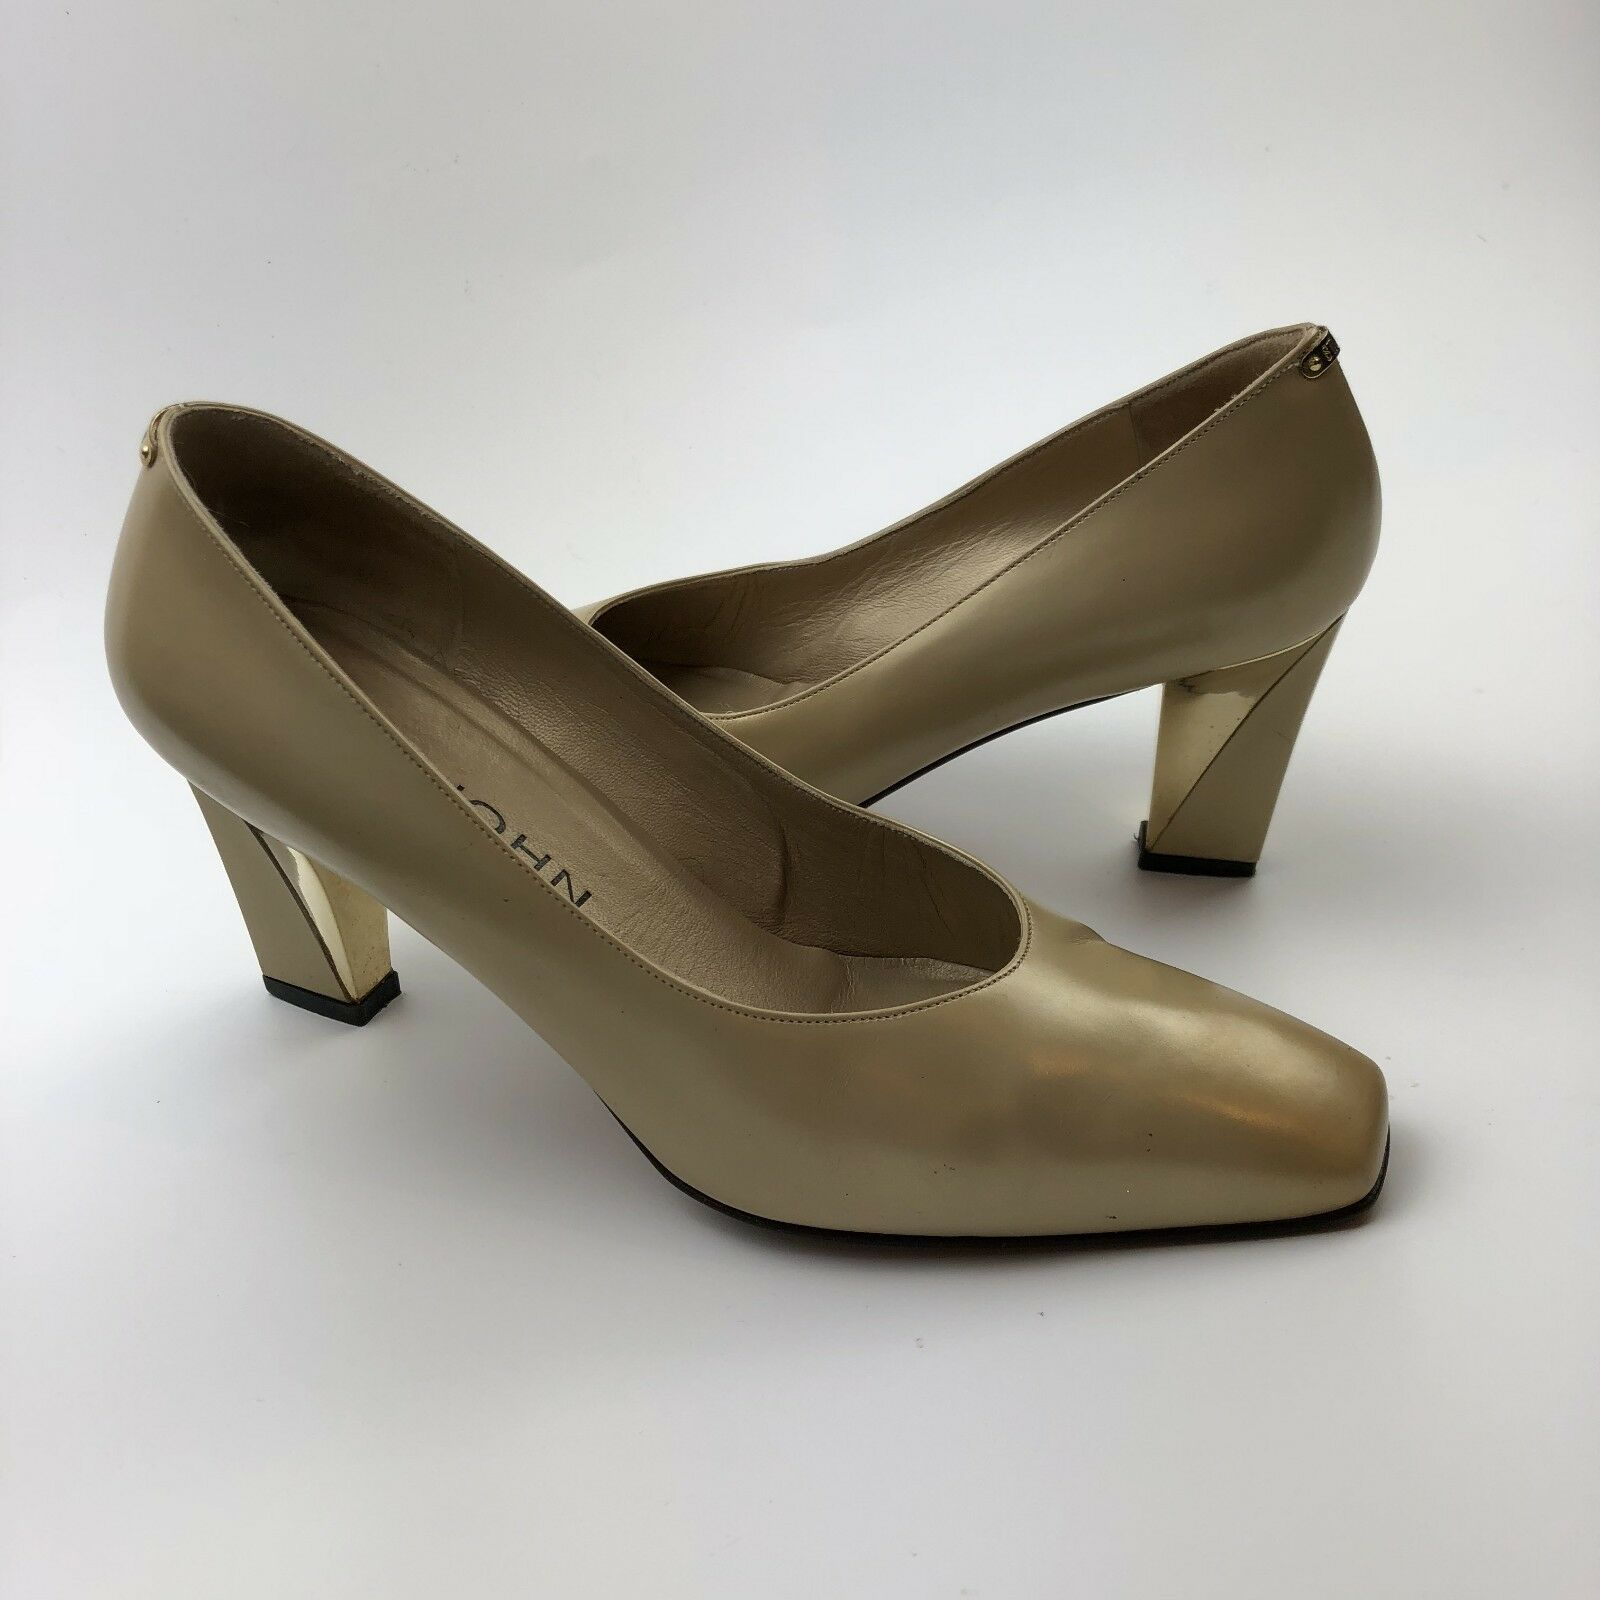 St. John Pumps Size 8B Womens Leather gold Square Toe Block Heel shoes 84022